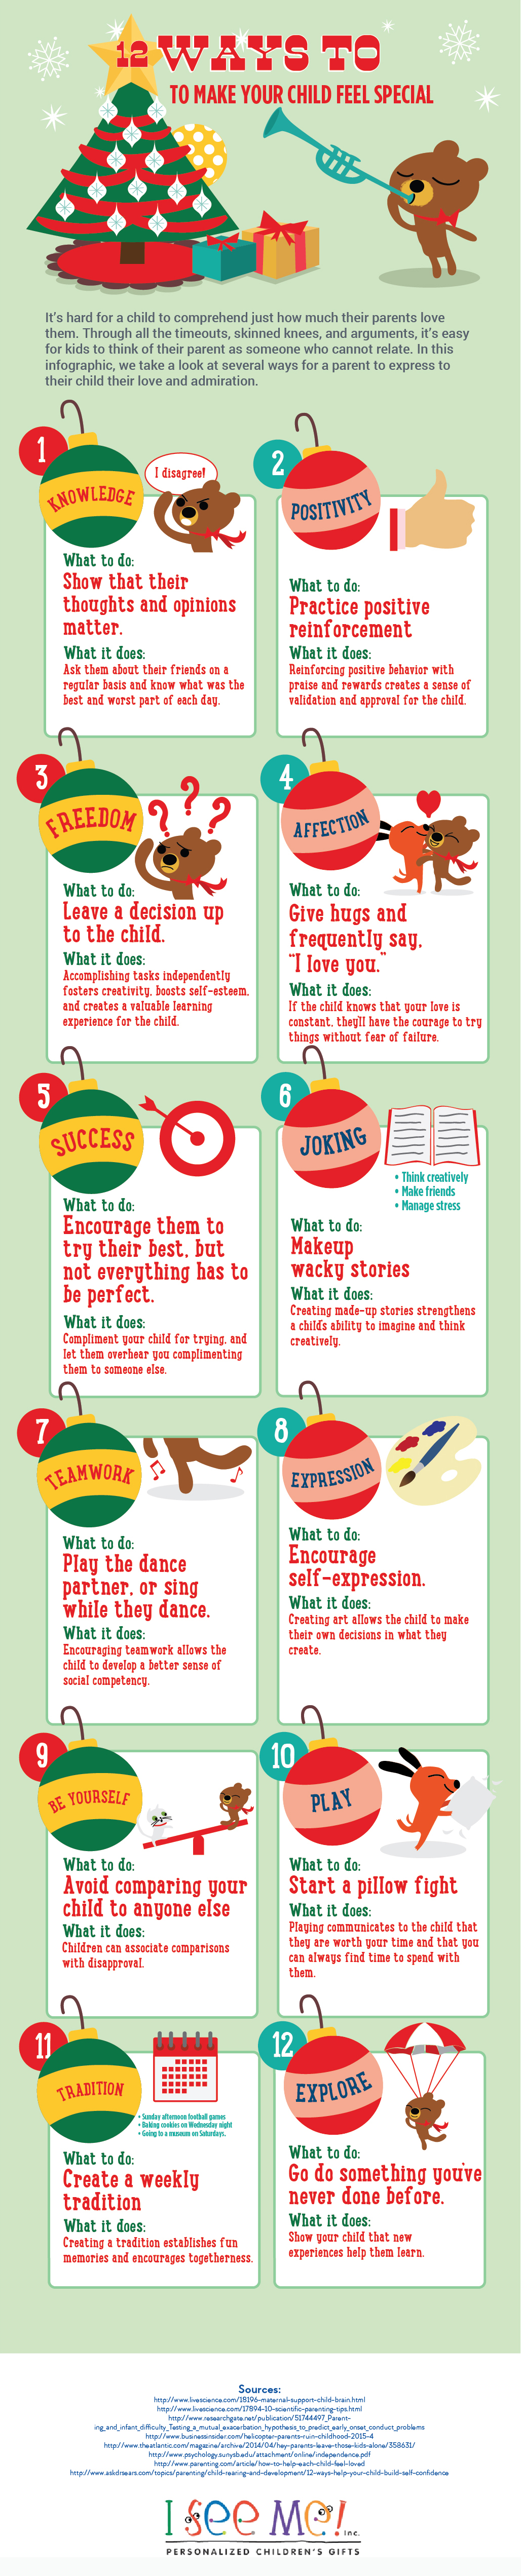 12 Ways to Make Your Child Feel Special